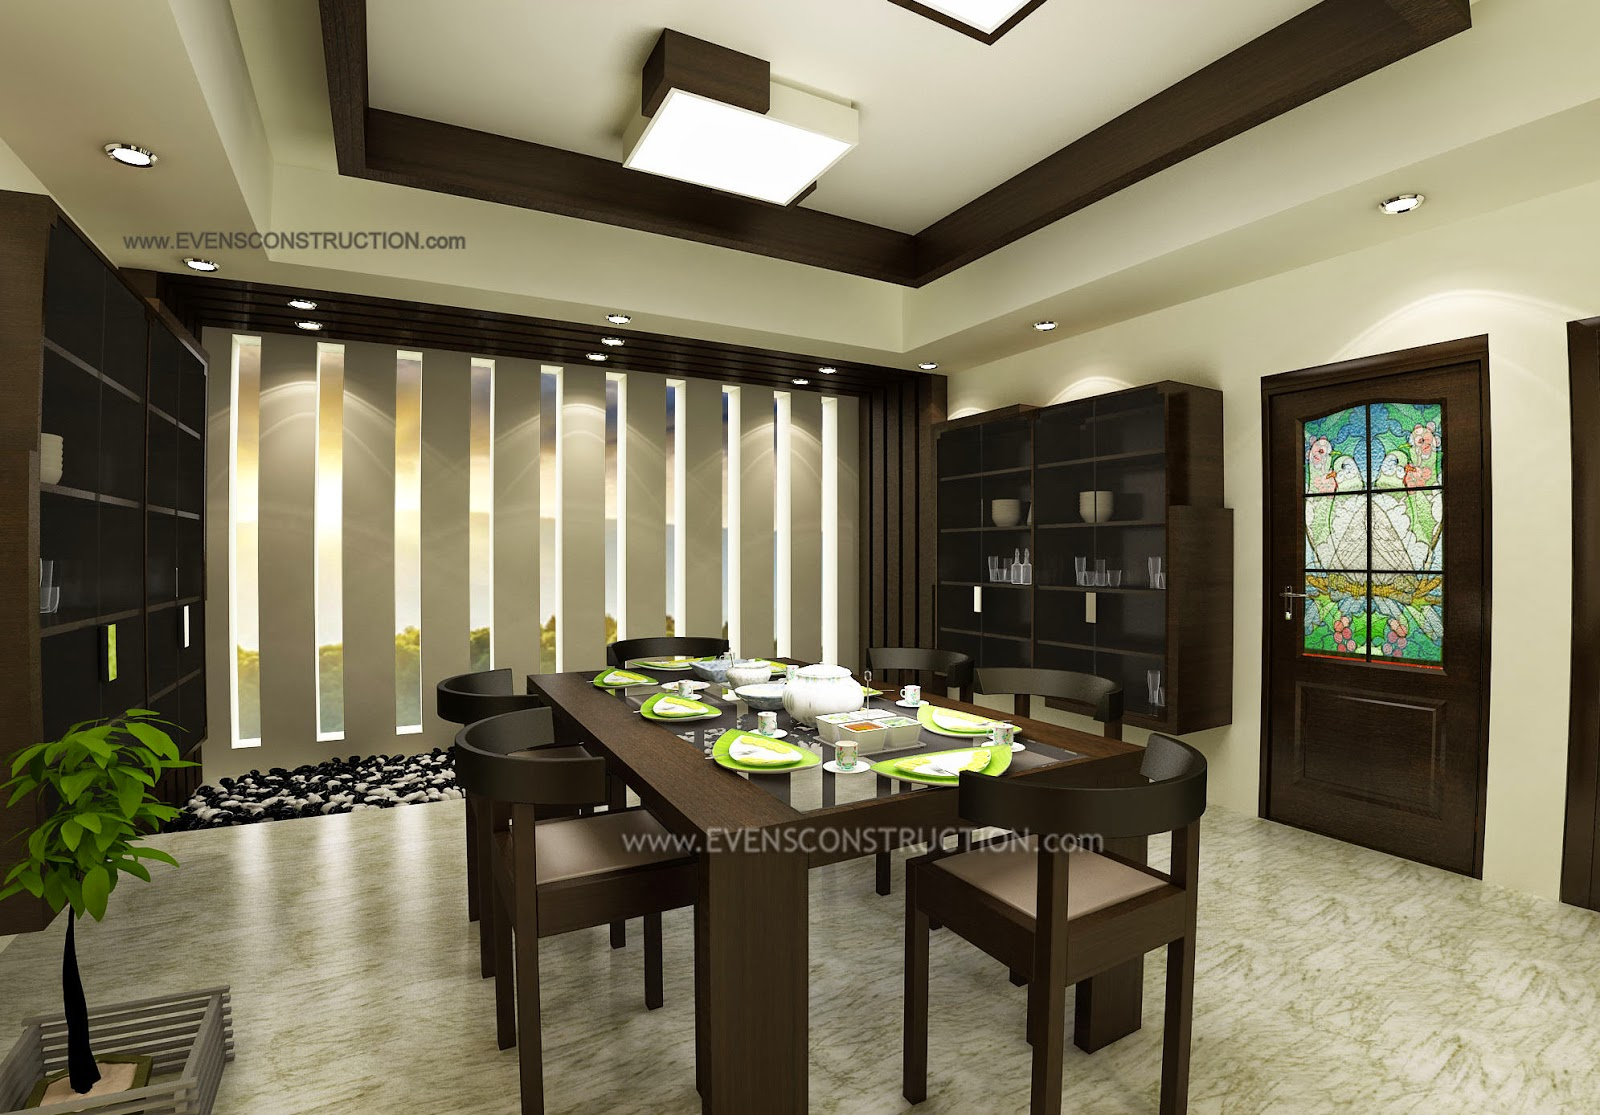 Evens construction pvt ltd modern dining room for Home dining hall design